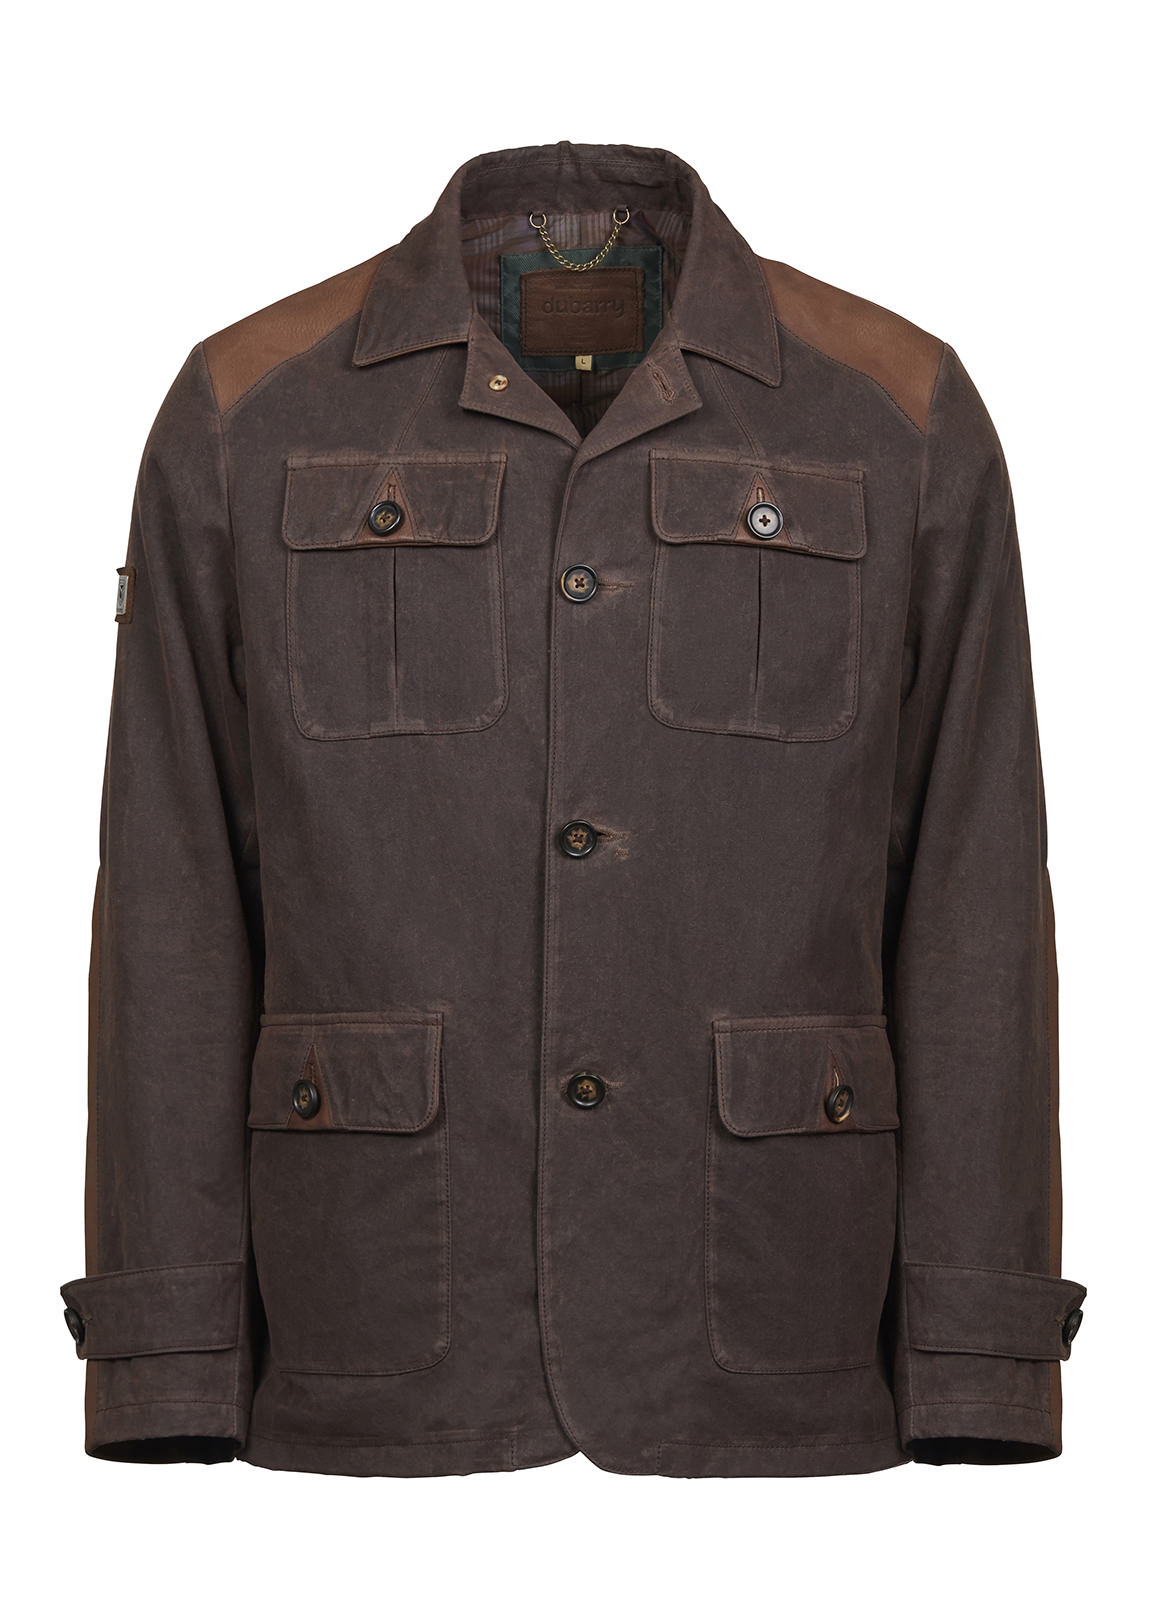 Dubarry_ Glenview Country Jacket - Old Rum_Image_2